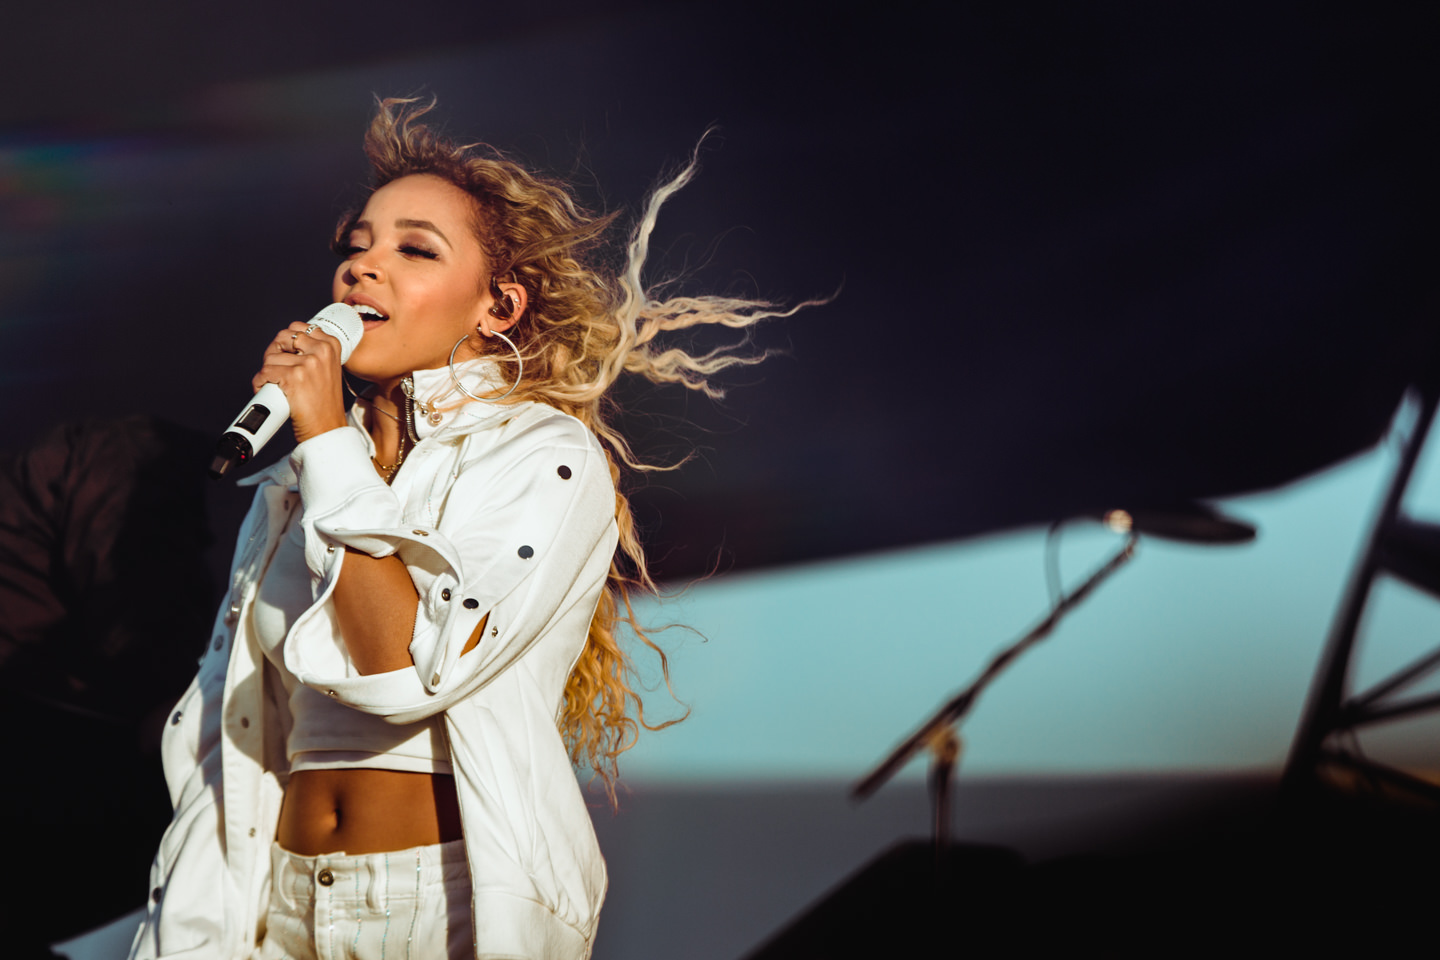 180306-kirby-gladstein-photography-air-and-style-festival-Tinashe-LA-7012.jpg